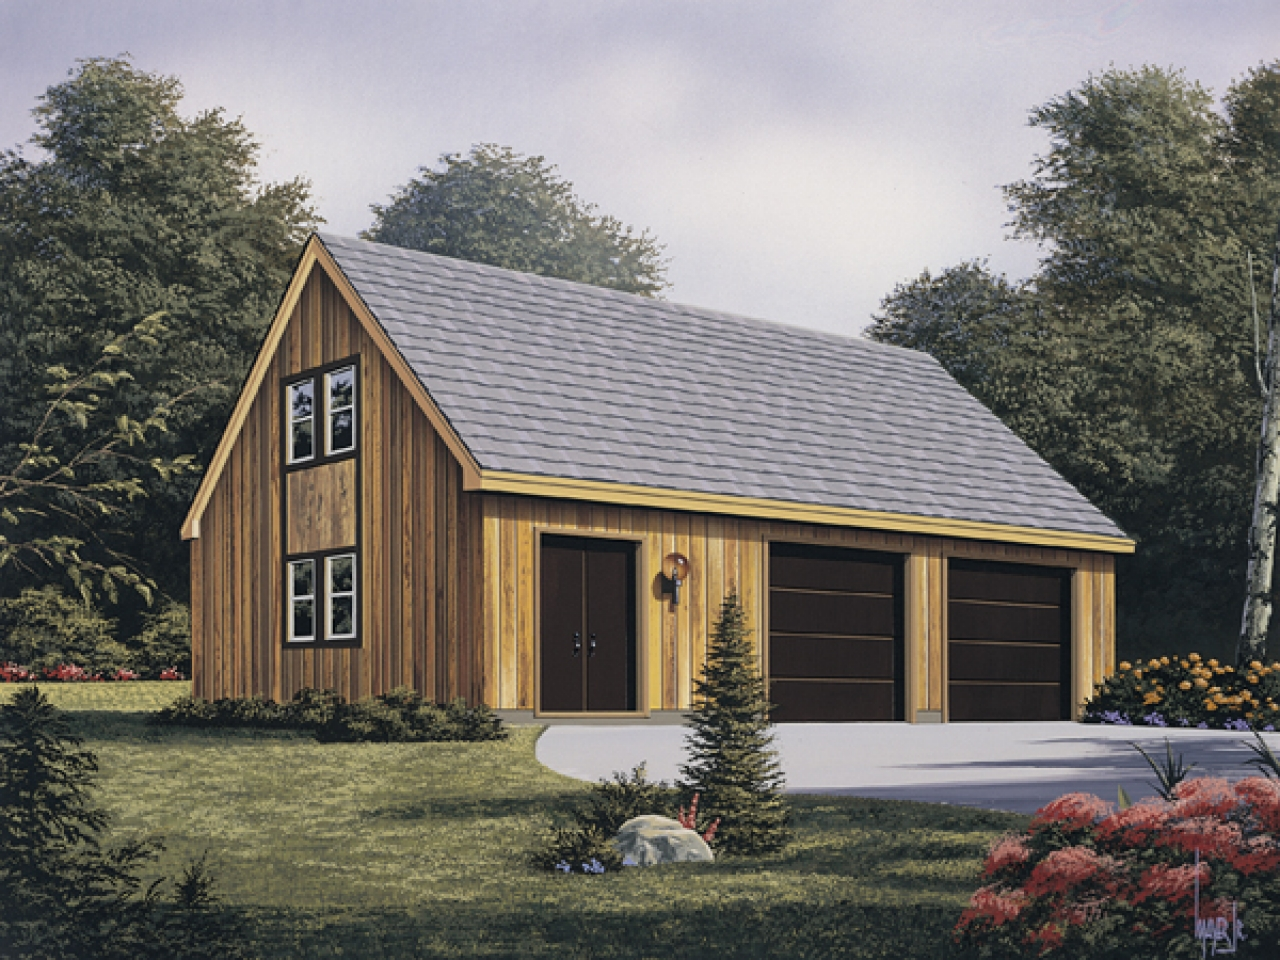 2 Car Garage Plans Garage With Workshop Plans Rustic